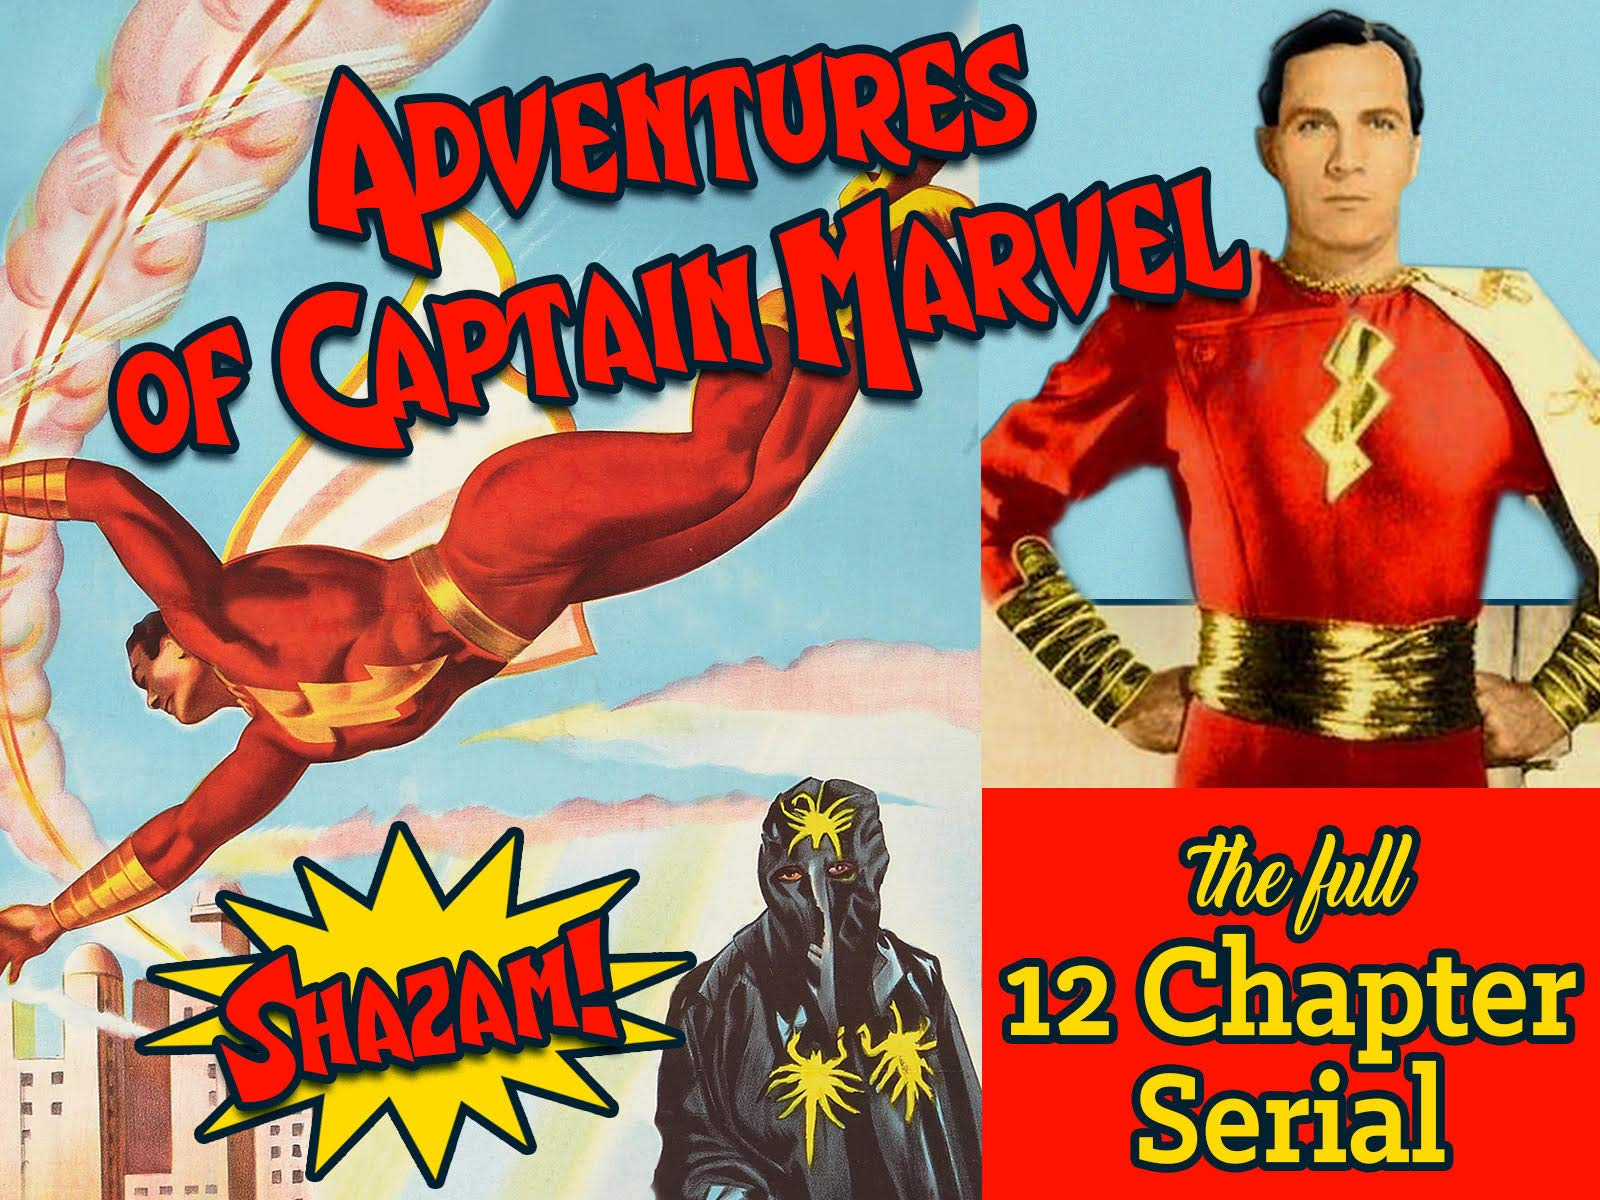 Adventures Of Captain Marvel - The Serial Classic - Shazam!